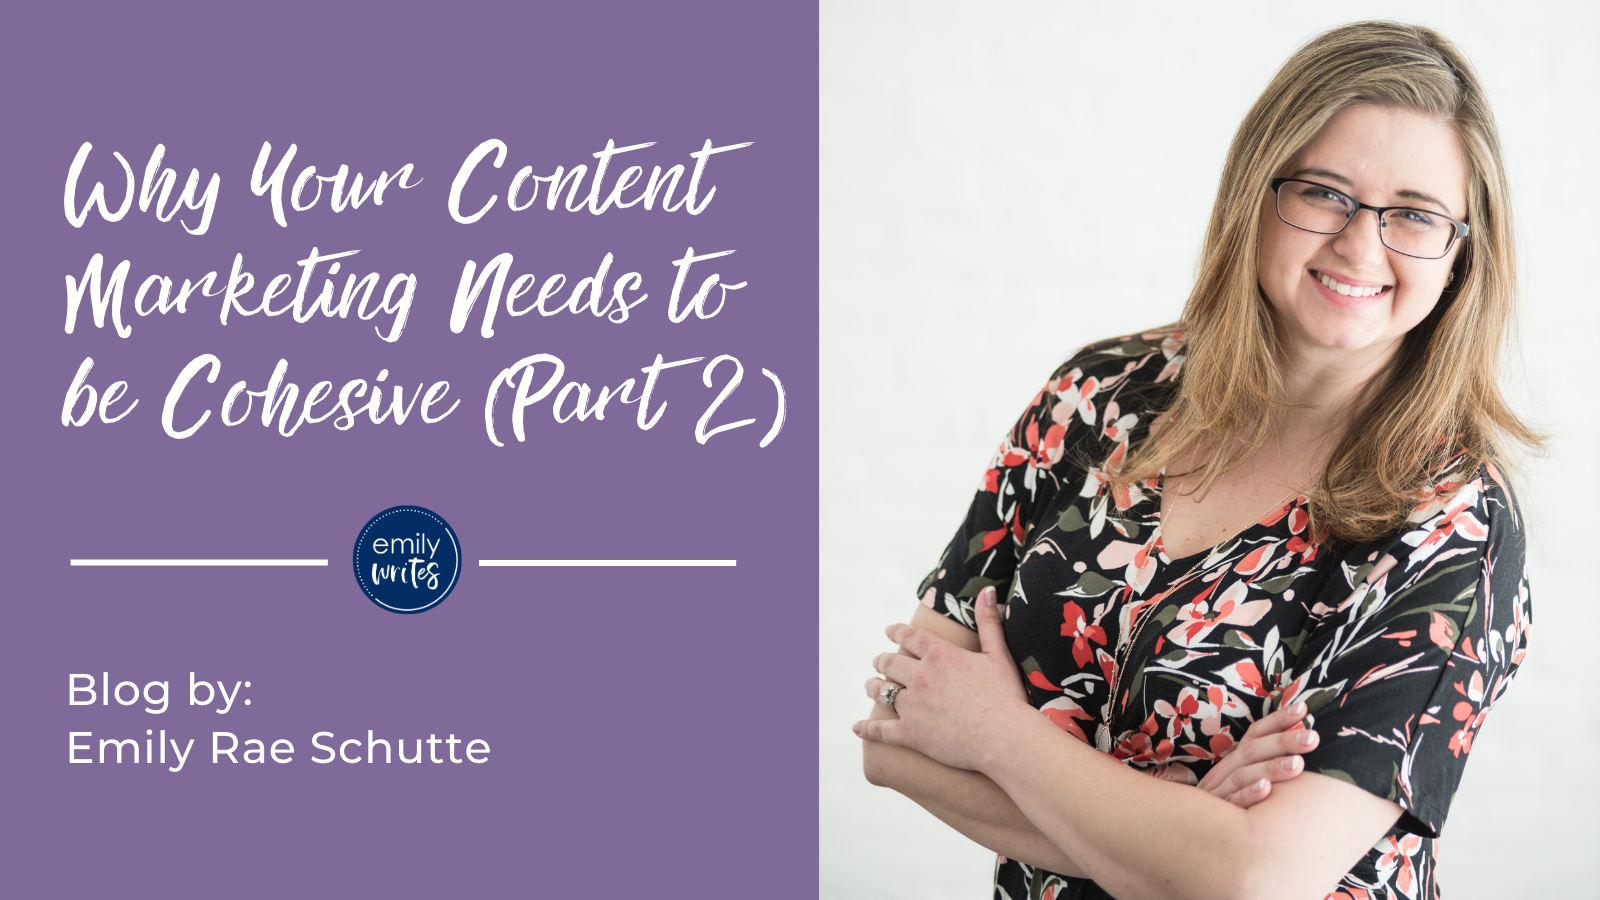 Why Your Content Marketing Needs to be Cohesive (Part 2)